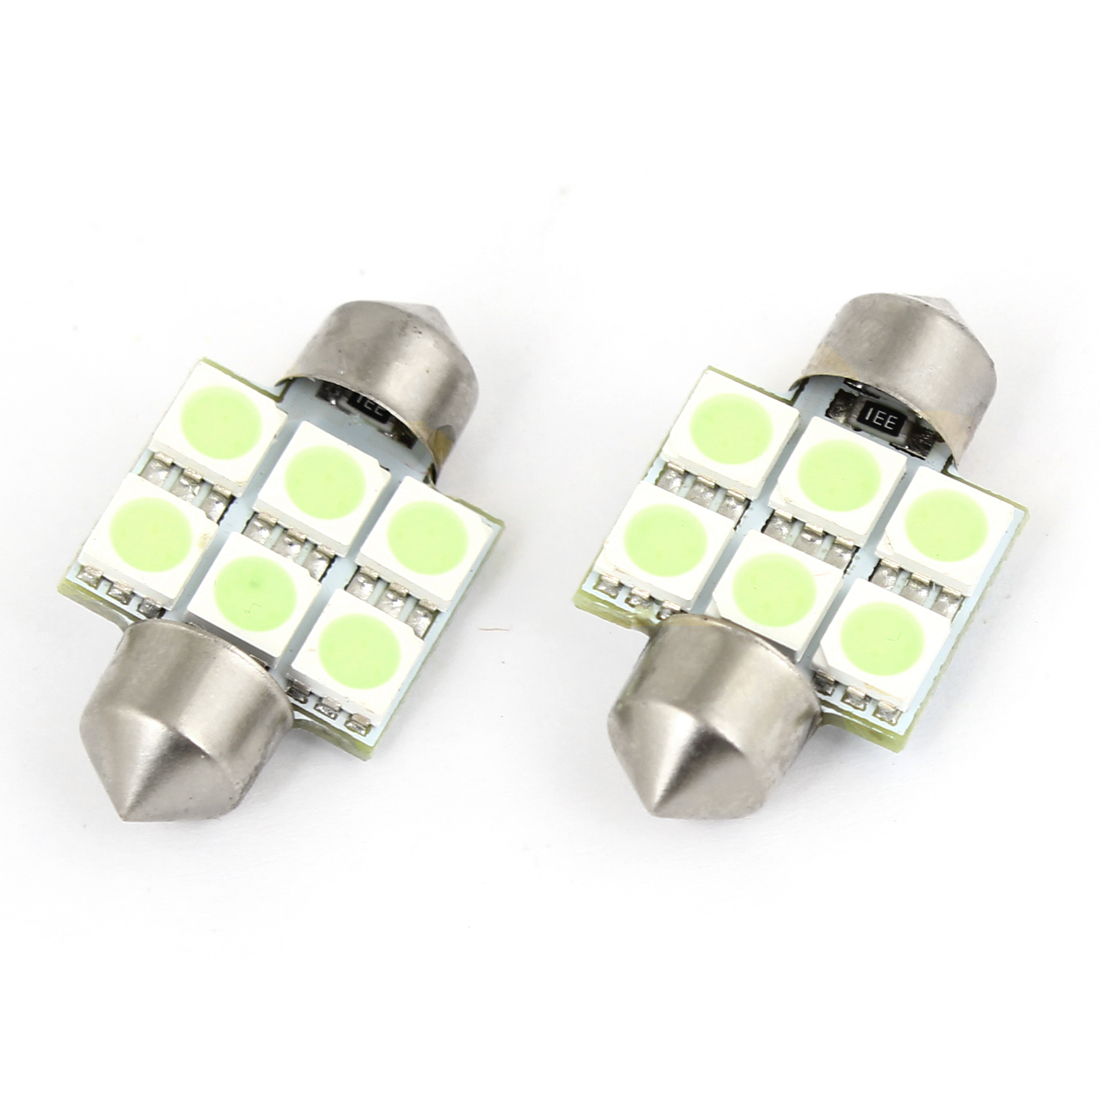 31mm Ice Blue 6 5050 SMD Festoon LED Light Dome Lamp Bulb 2pcs 3175 for Auto